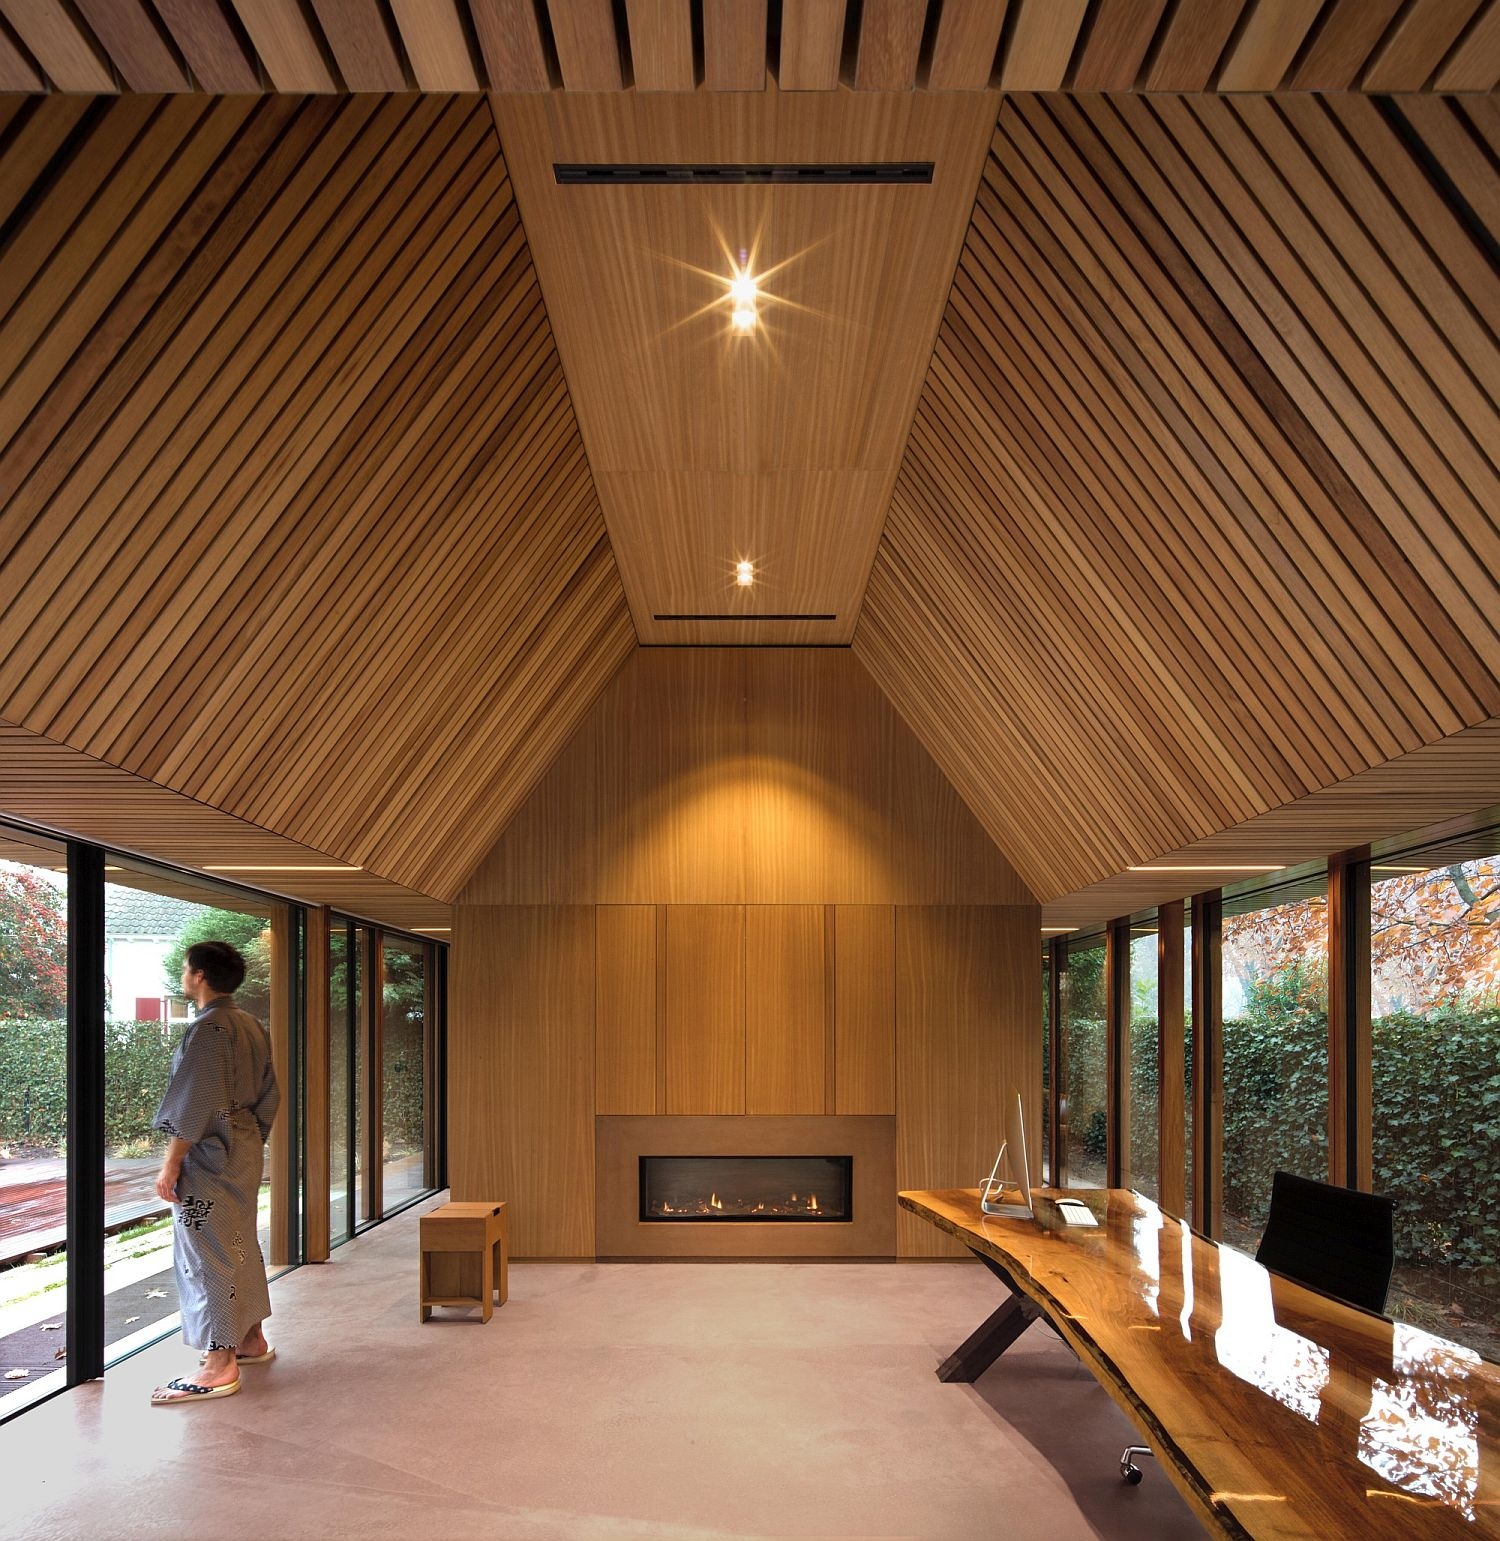 Iroko wood and glass interior of the Tiny Office Pavilion Vught